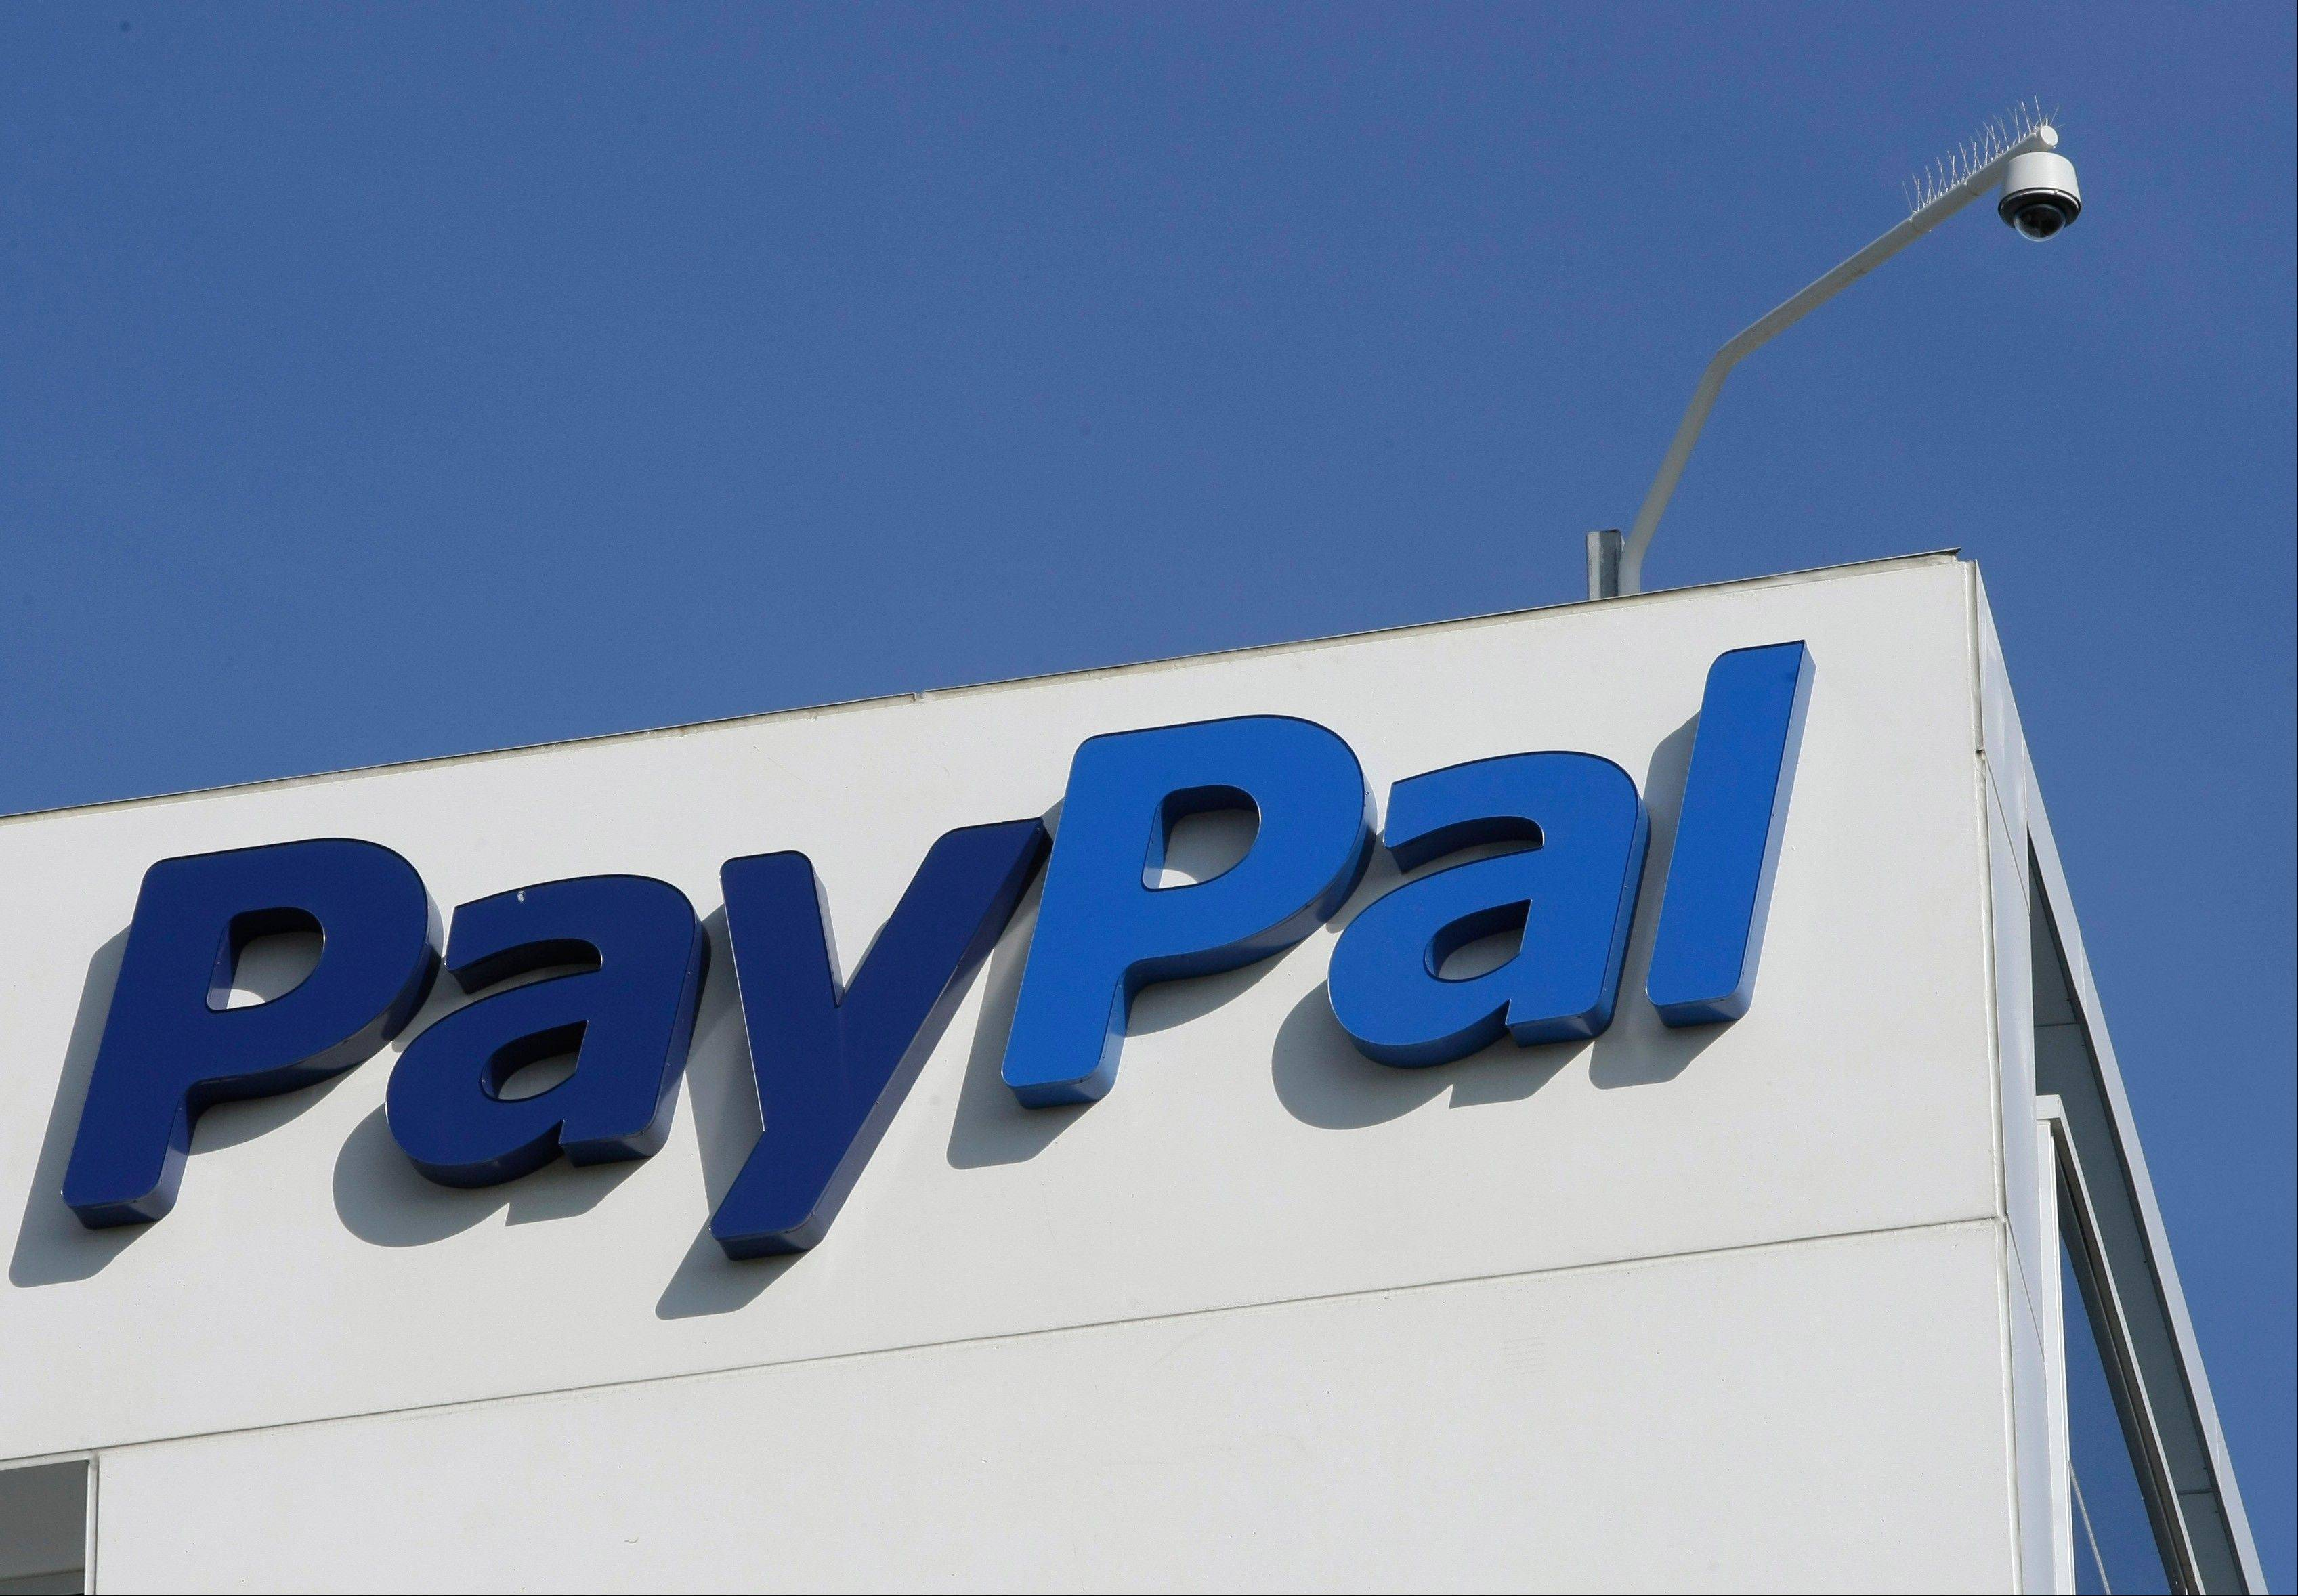 PayPal is updating its mobile app, adding features such as the ability to place an order ahead of time and pay with it while at the restaurant table.